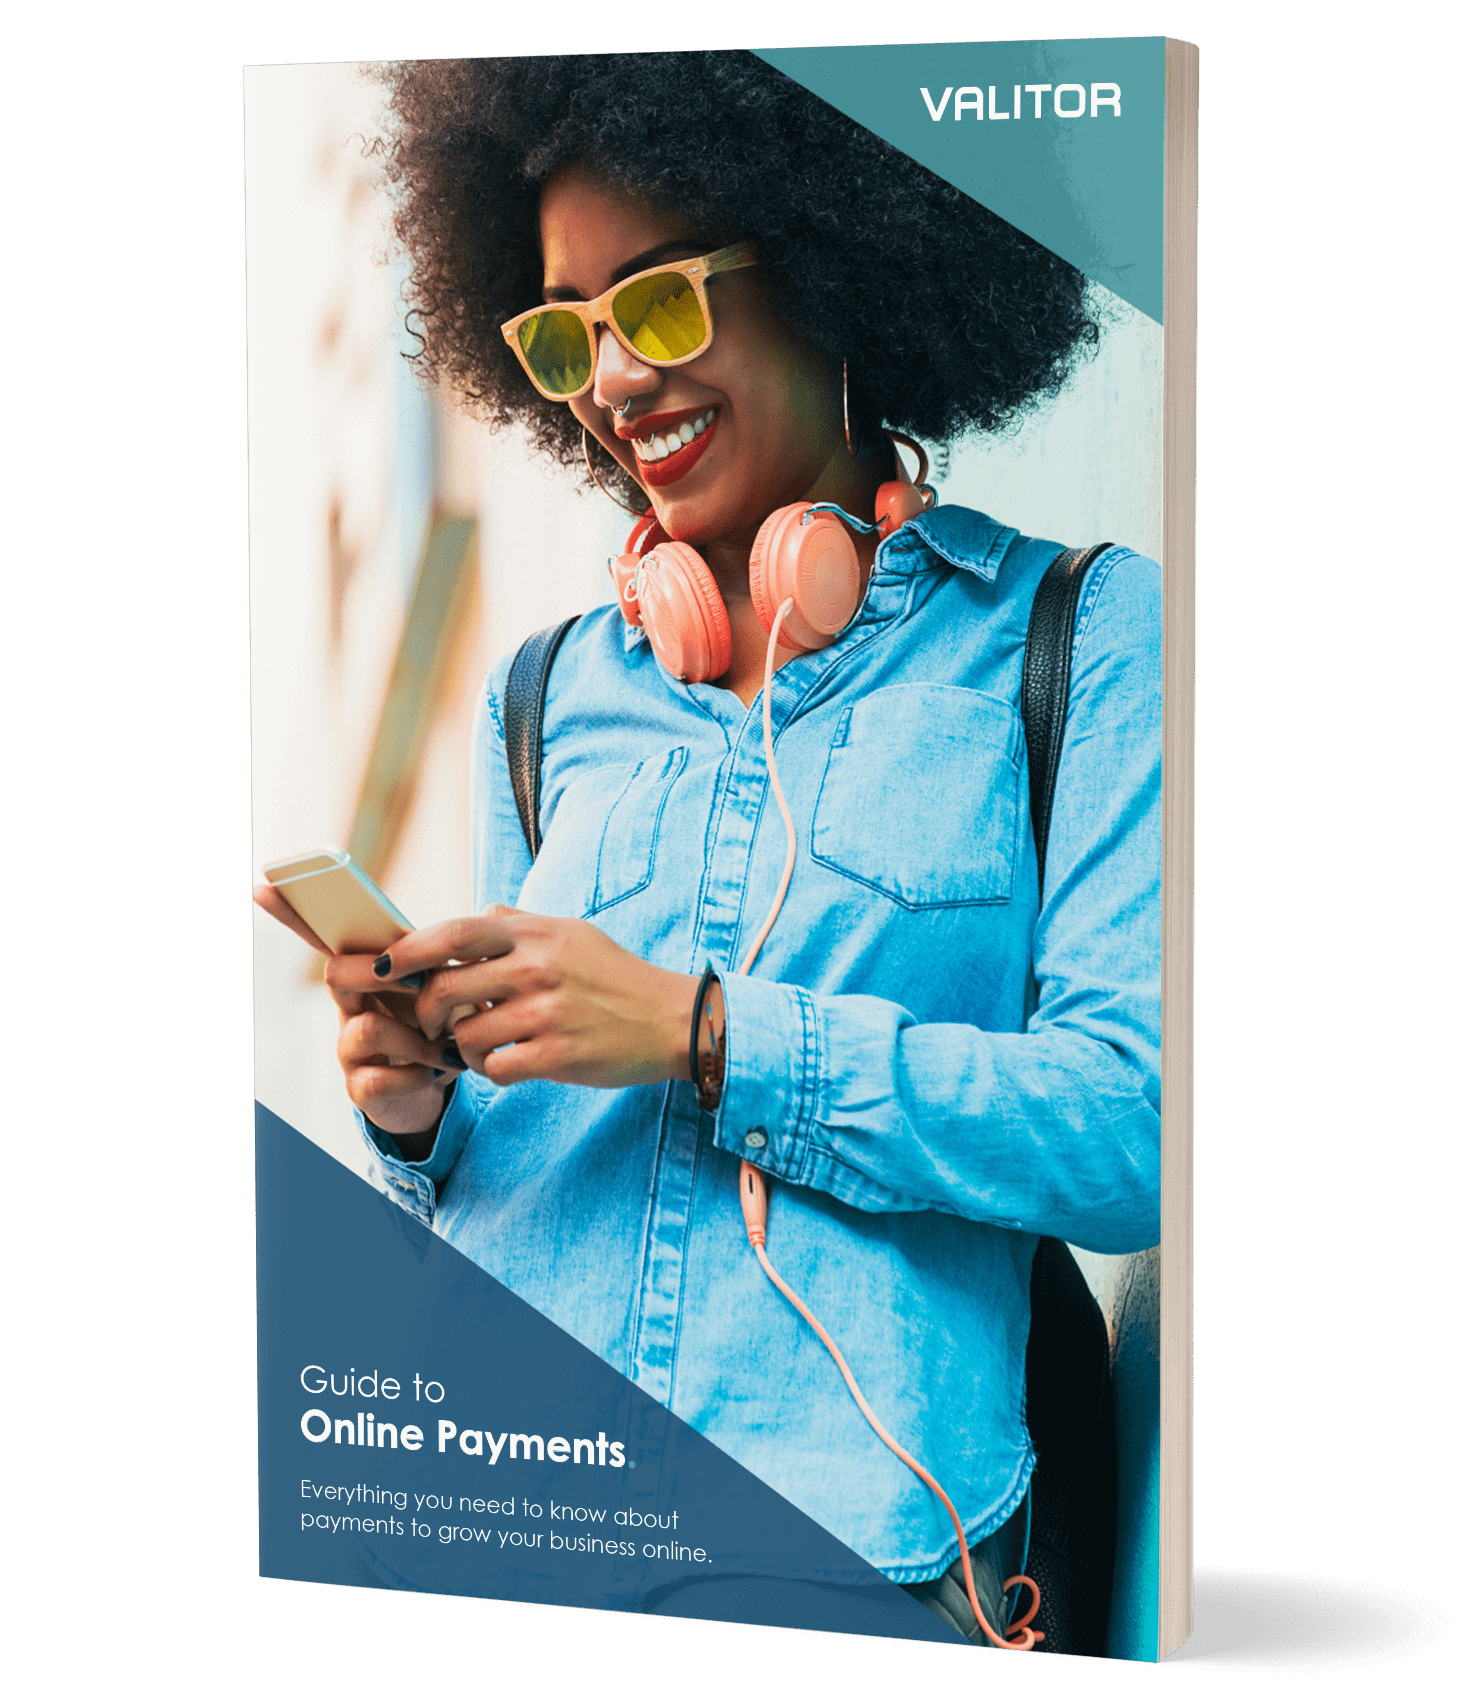 Your Guide to Online Payments